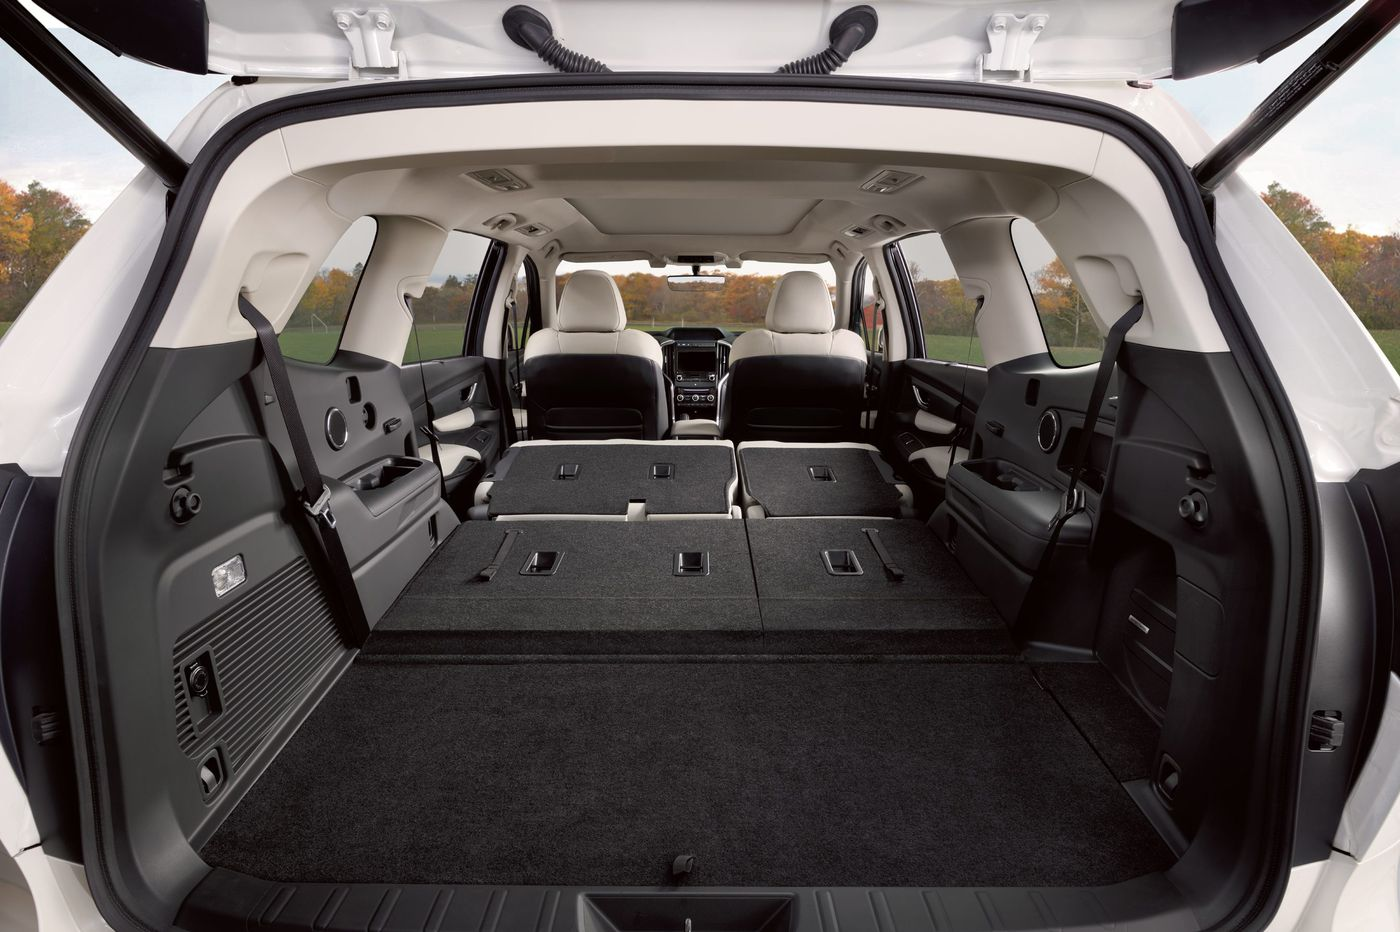 Roomy three-row SUVs appeal to 'child-raising generation'